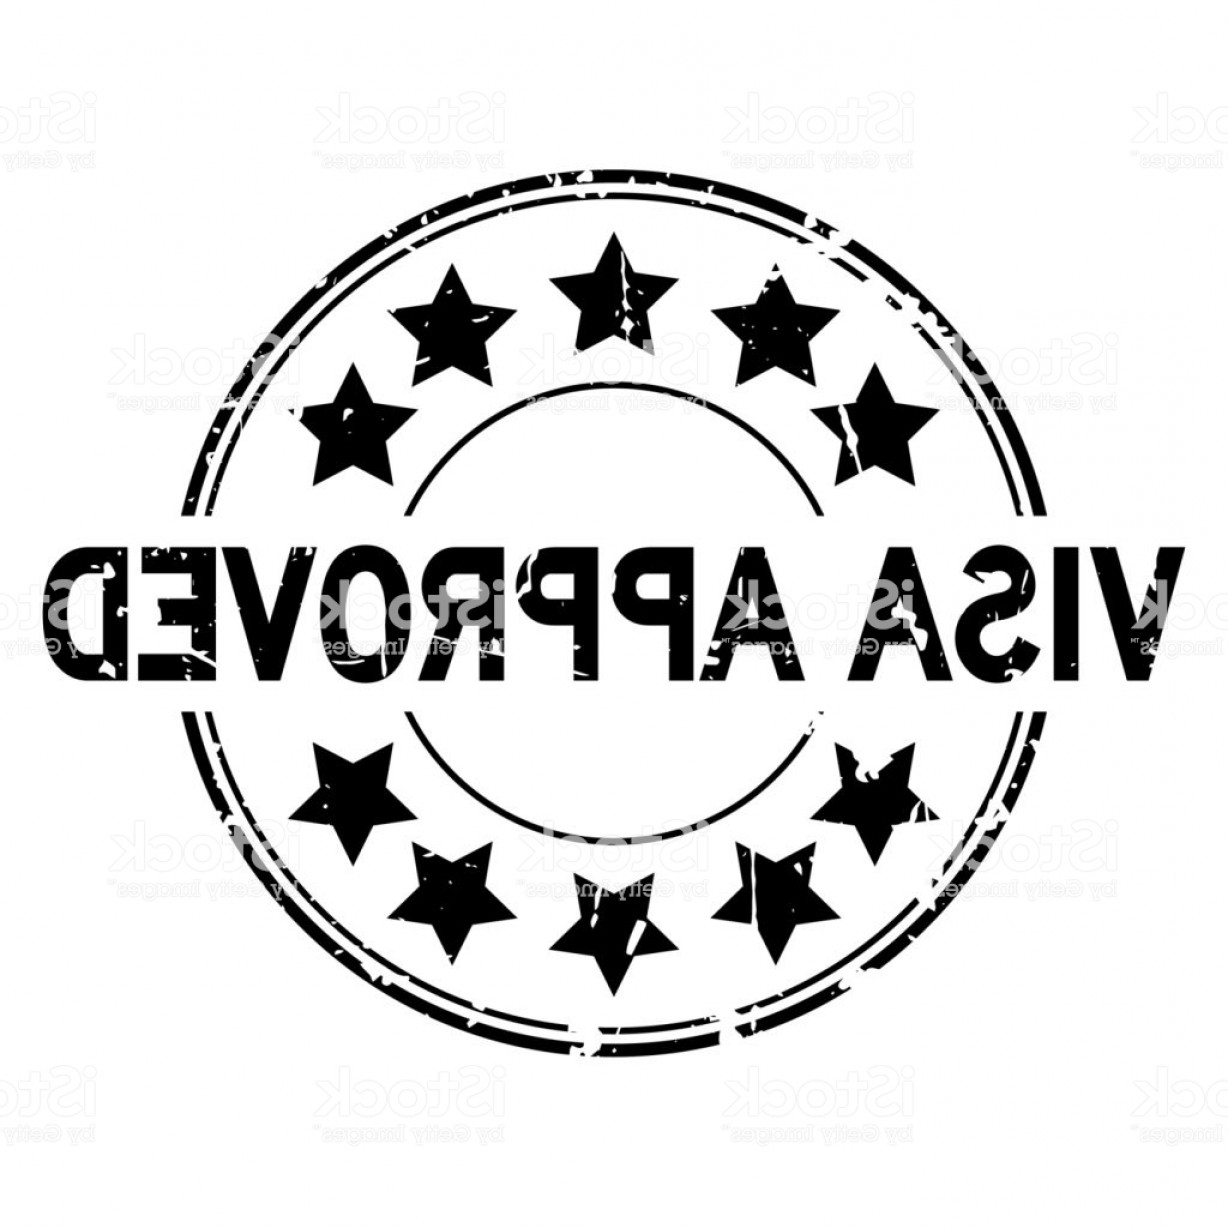 Visa Logo Vector Clip Art: Grunge Black Visa Approved With Star Icon Round Rubber Seal Stamp On White Background Gm